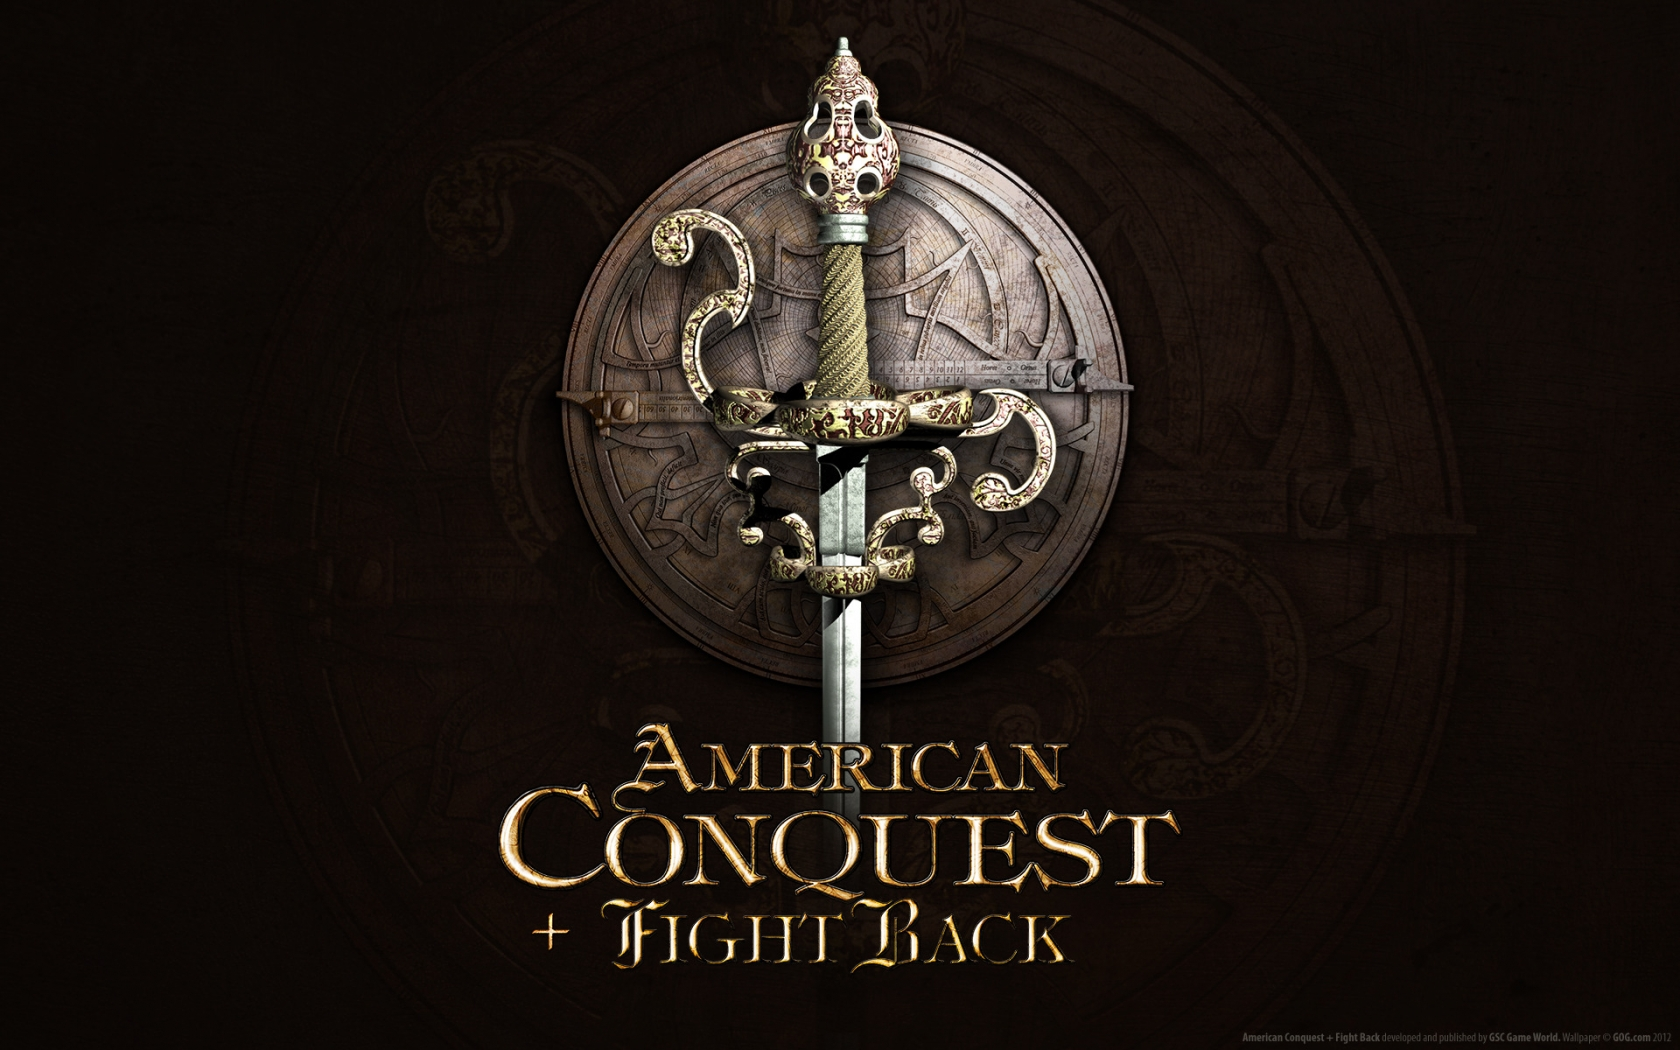 American Conquest for 1680 x 1050 widescreen resolution